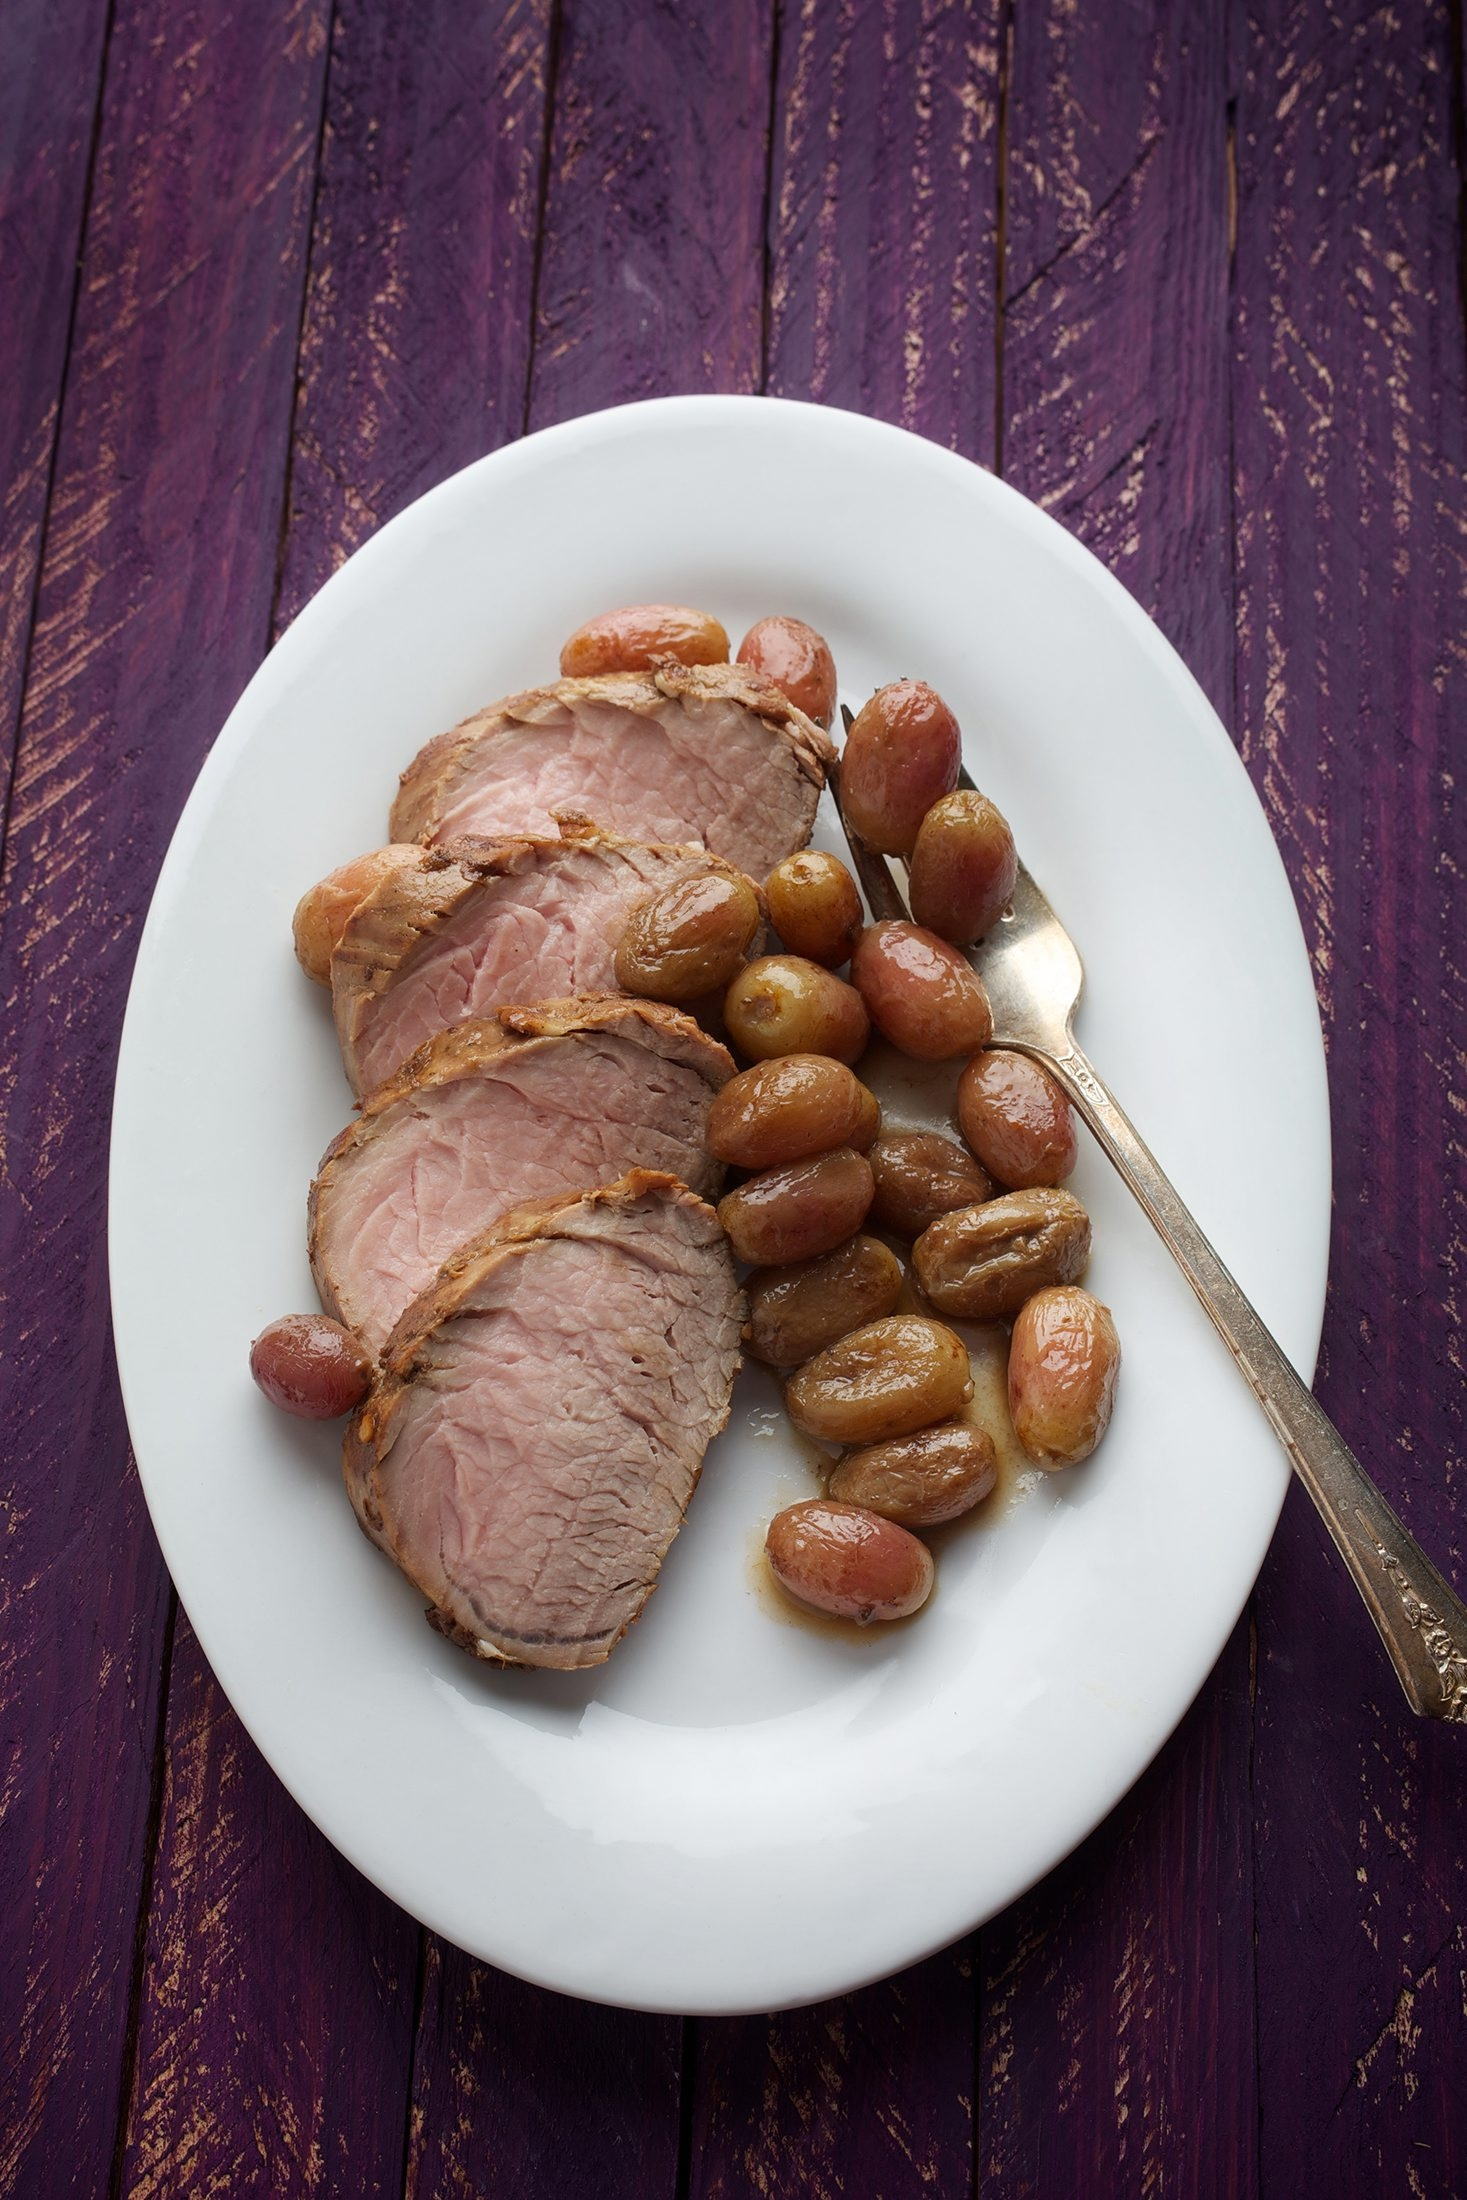 Roasted grapes give a fresh twist to the classic fruit-and-pork pairing.